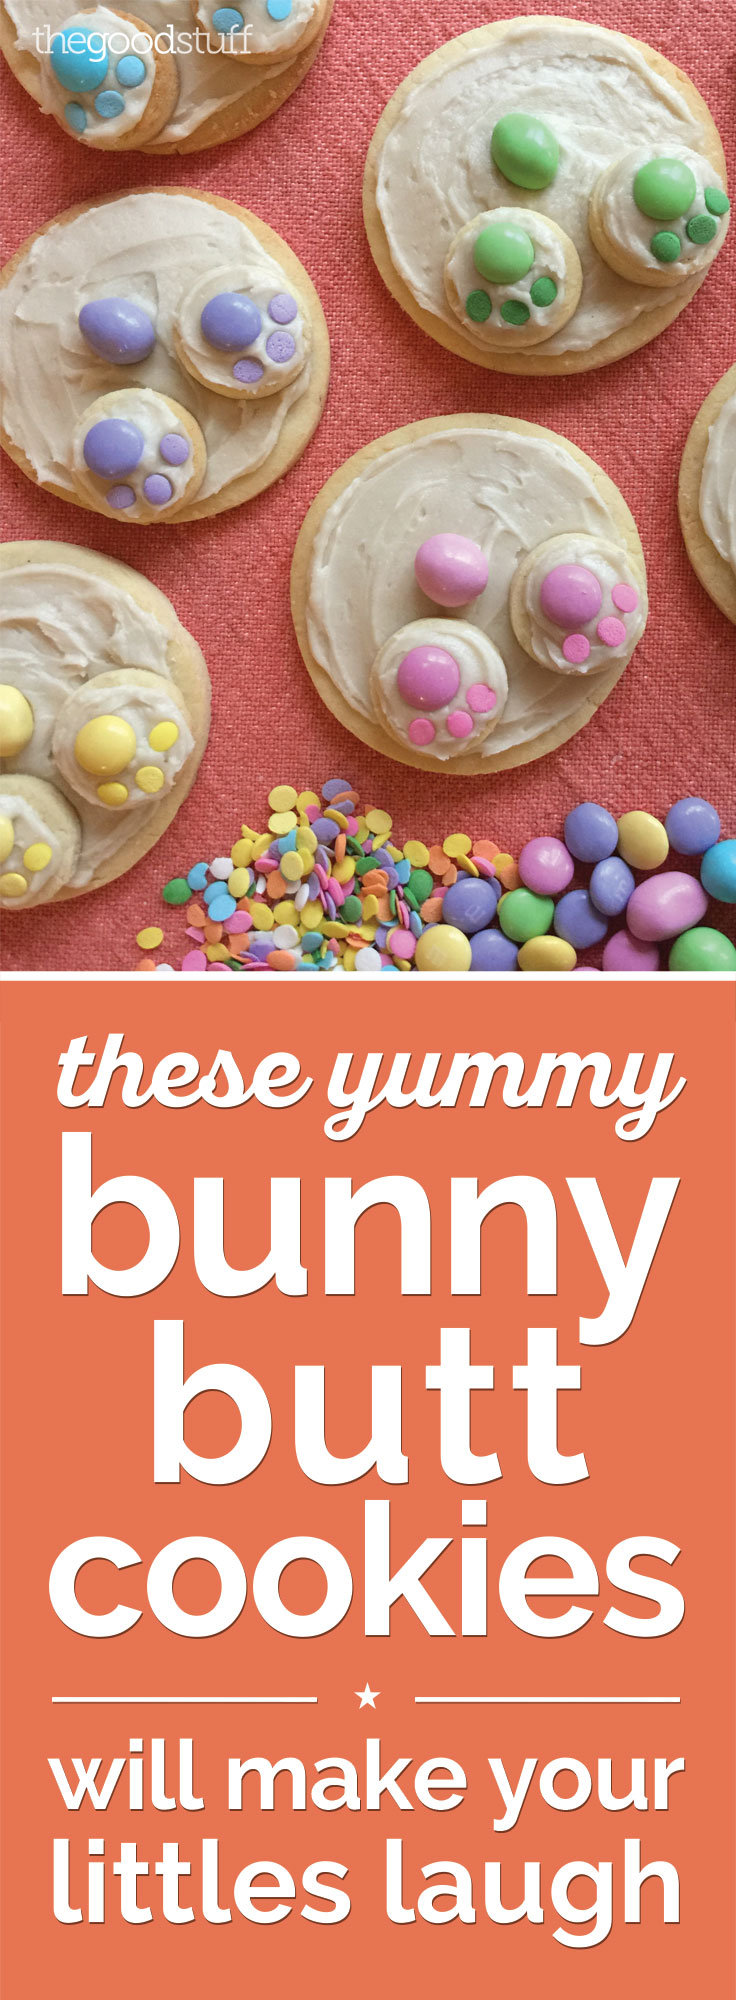 Easter Cookie Recipes: Bunny Butt Cookies | thegoodstuff